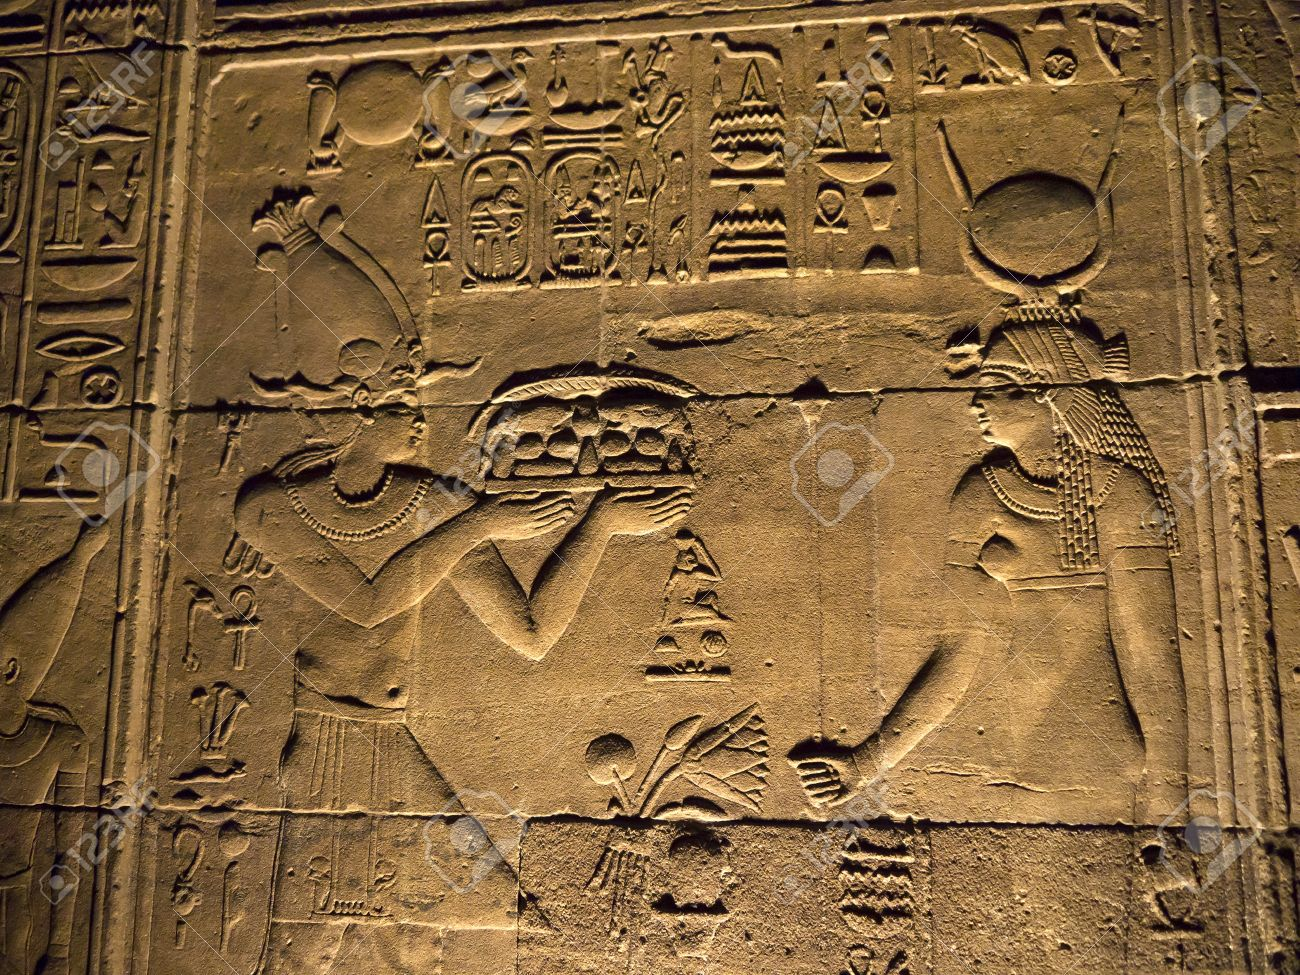 The Temple to Isis, Horus and Osiris on Philae Island on the